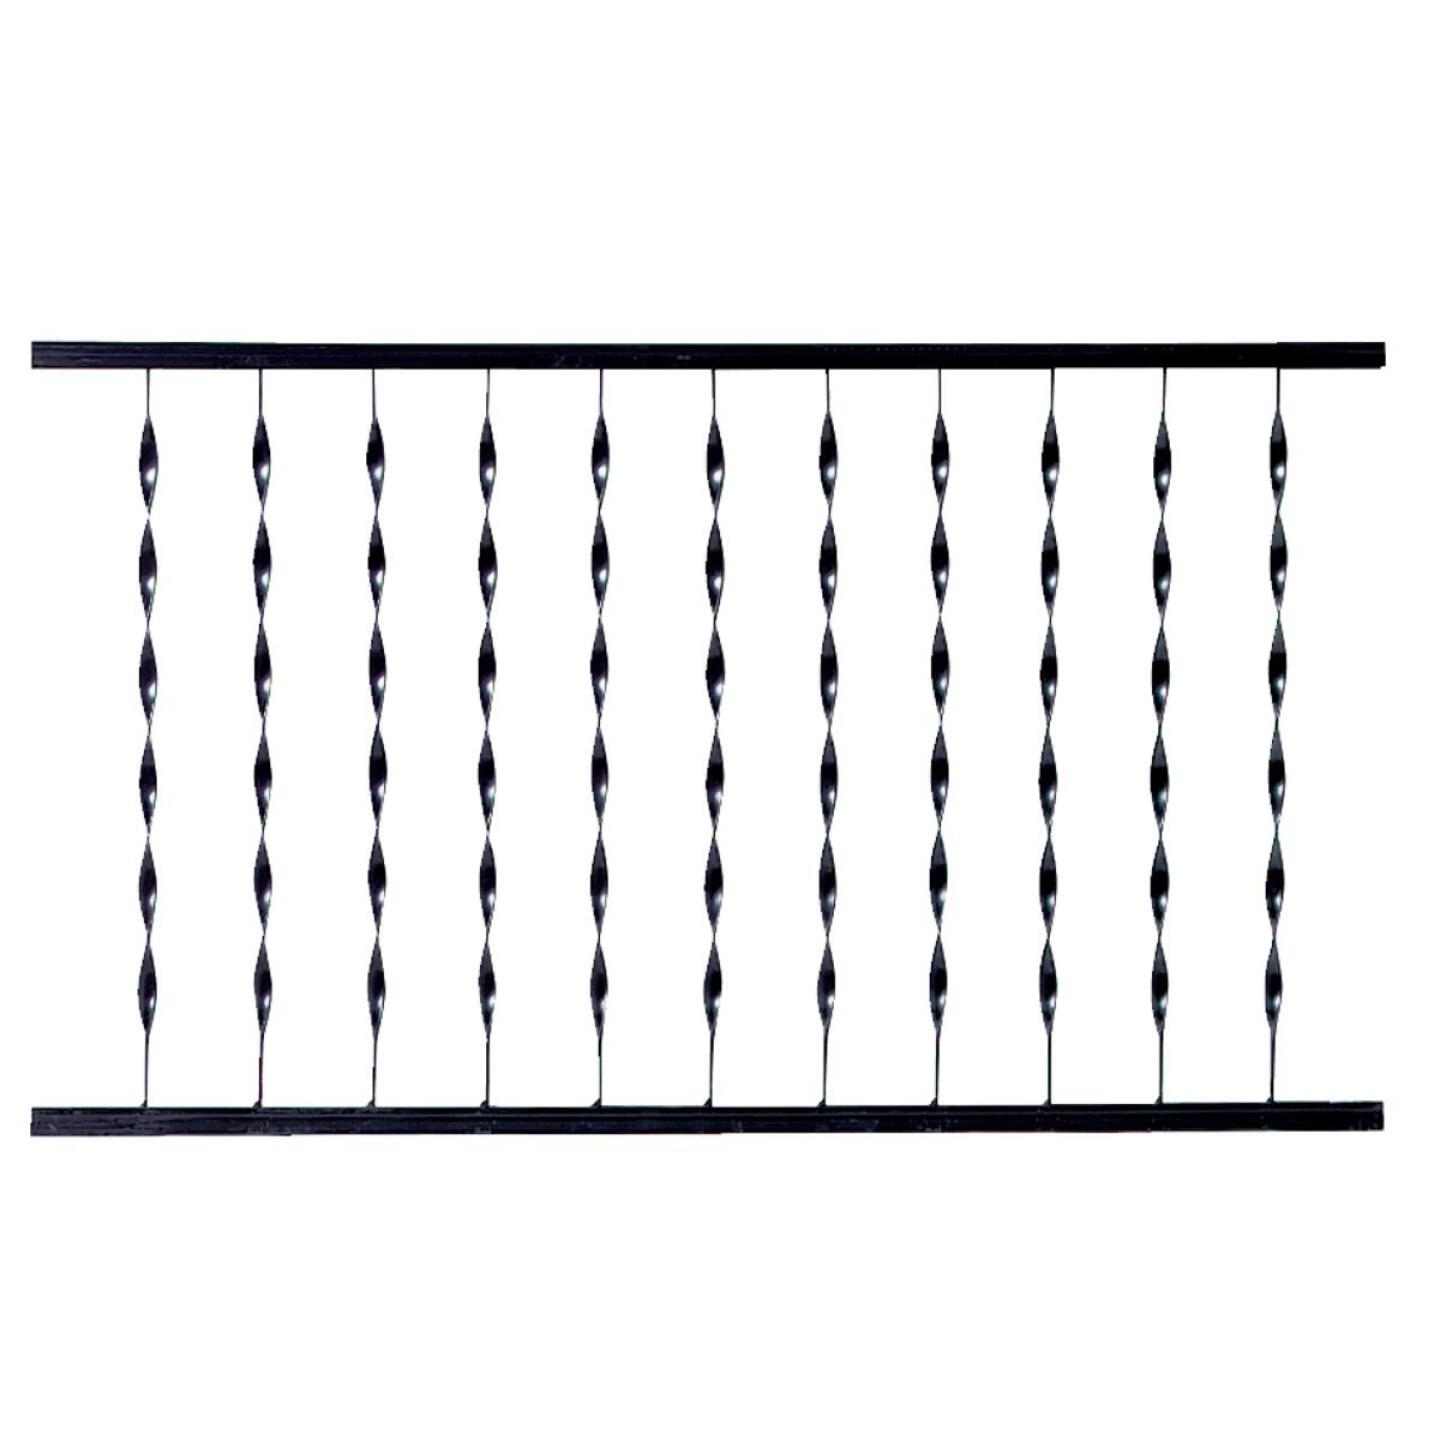 Gilpin Windsor Plus 32 In. H. x 6 Ft. L. Wrought Iron Railing Image 1